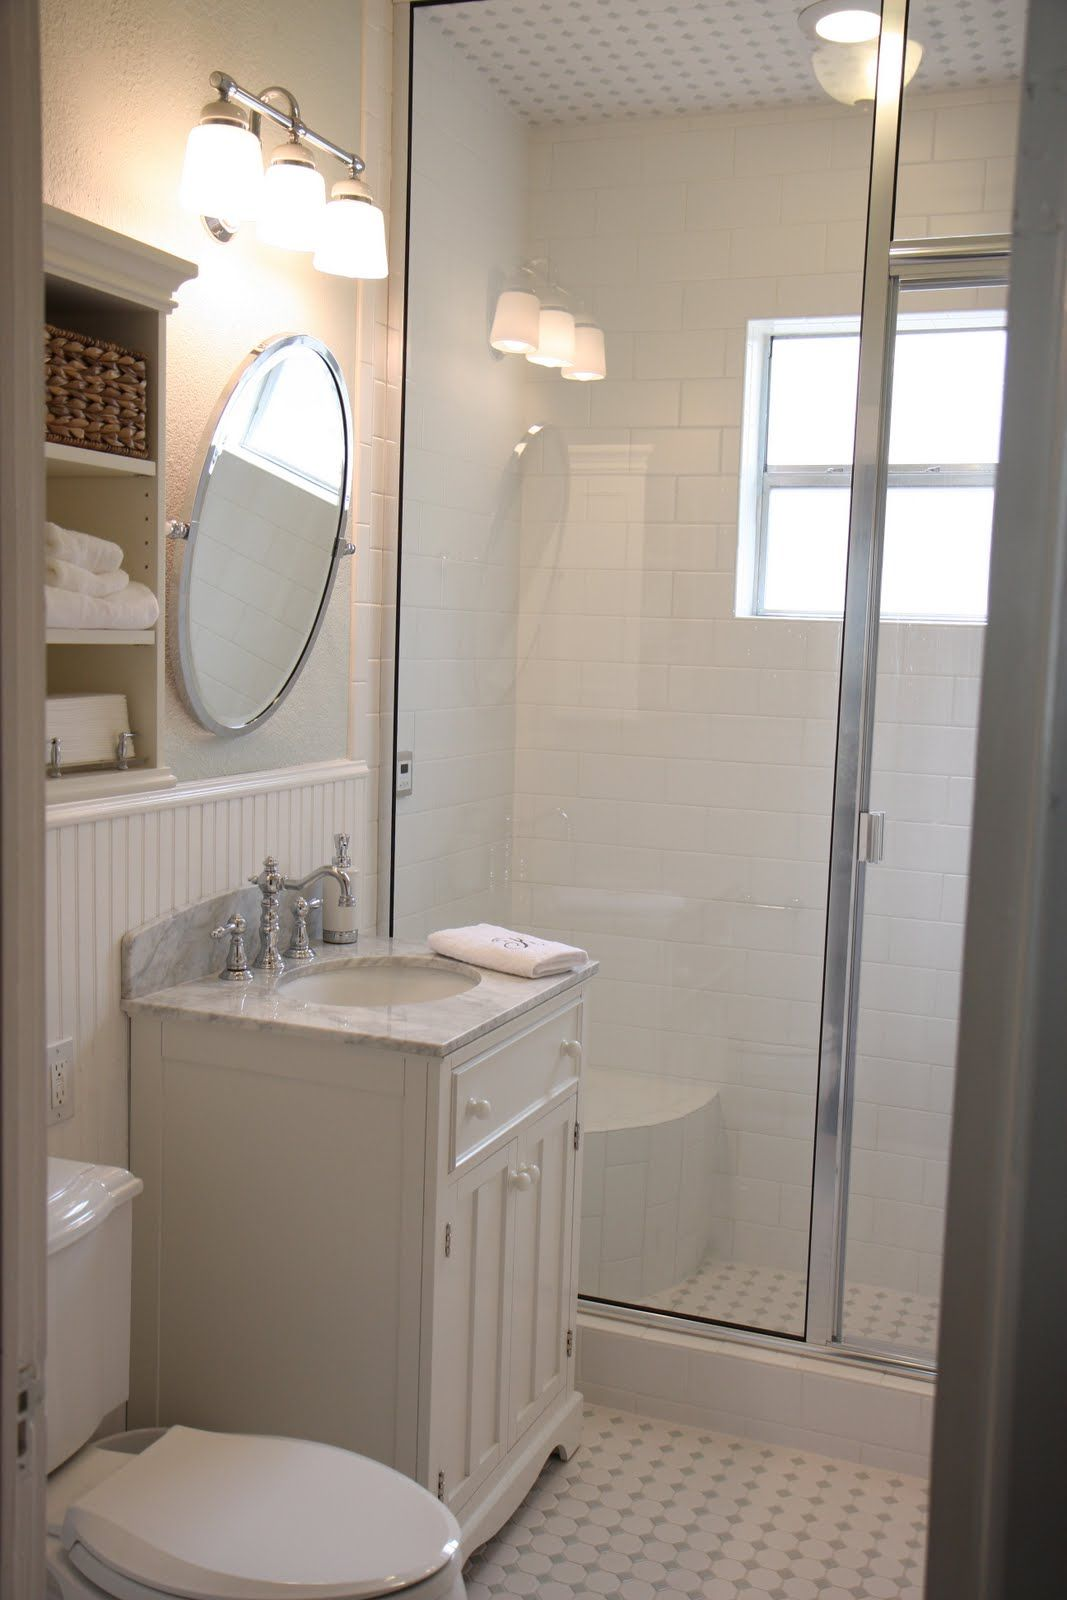 Bathroom Remodeling Fort Worth artec group inc. interior design and remodeling firm fort worth